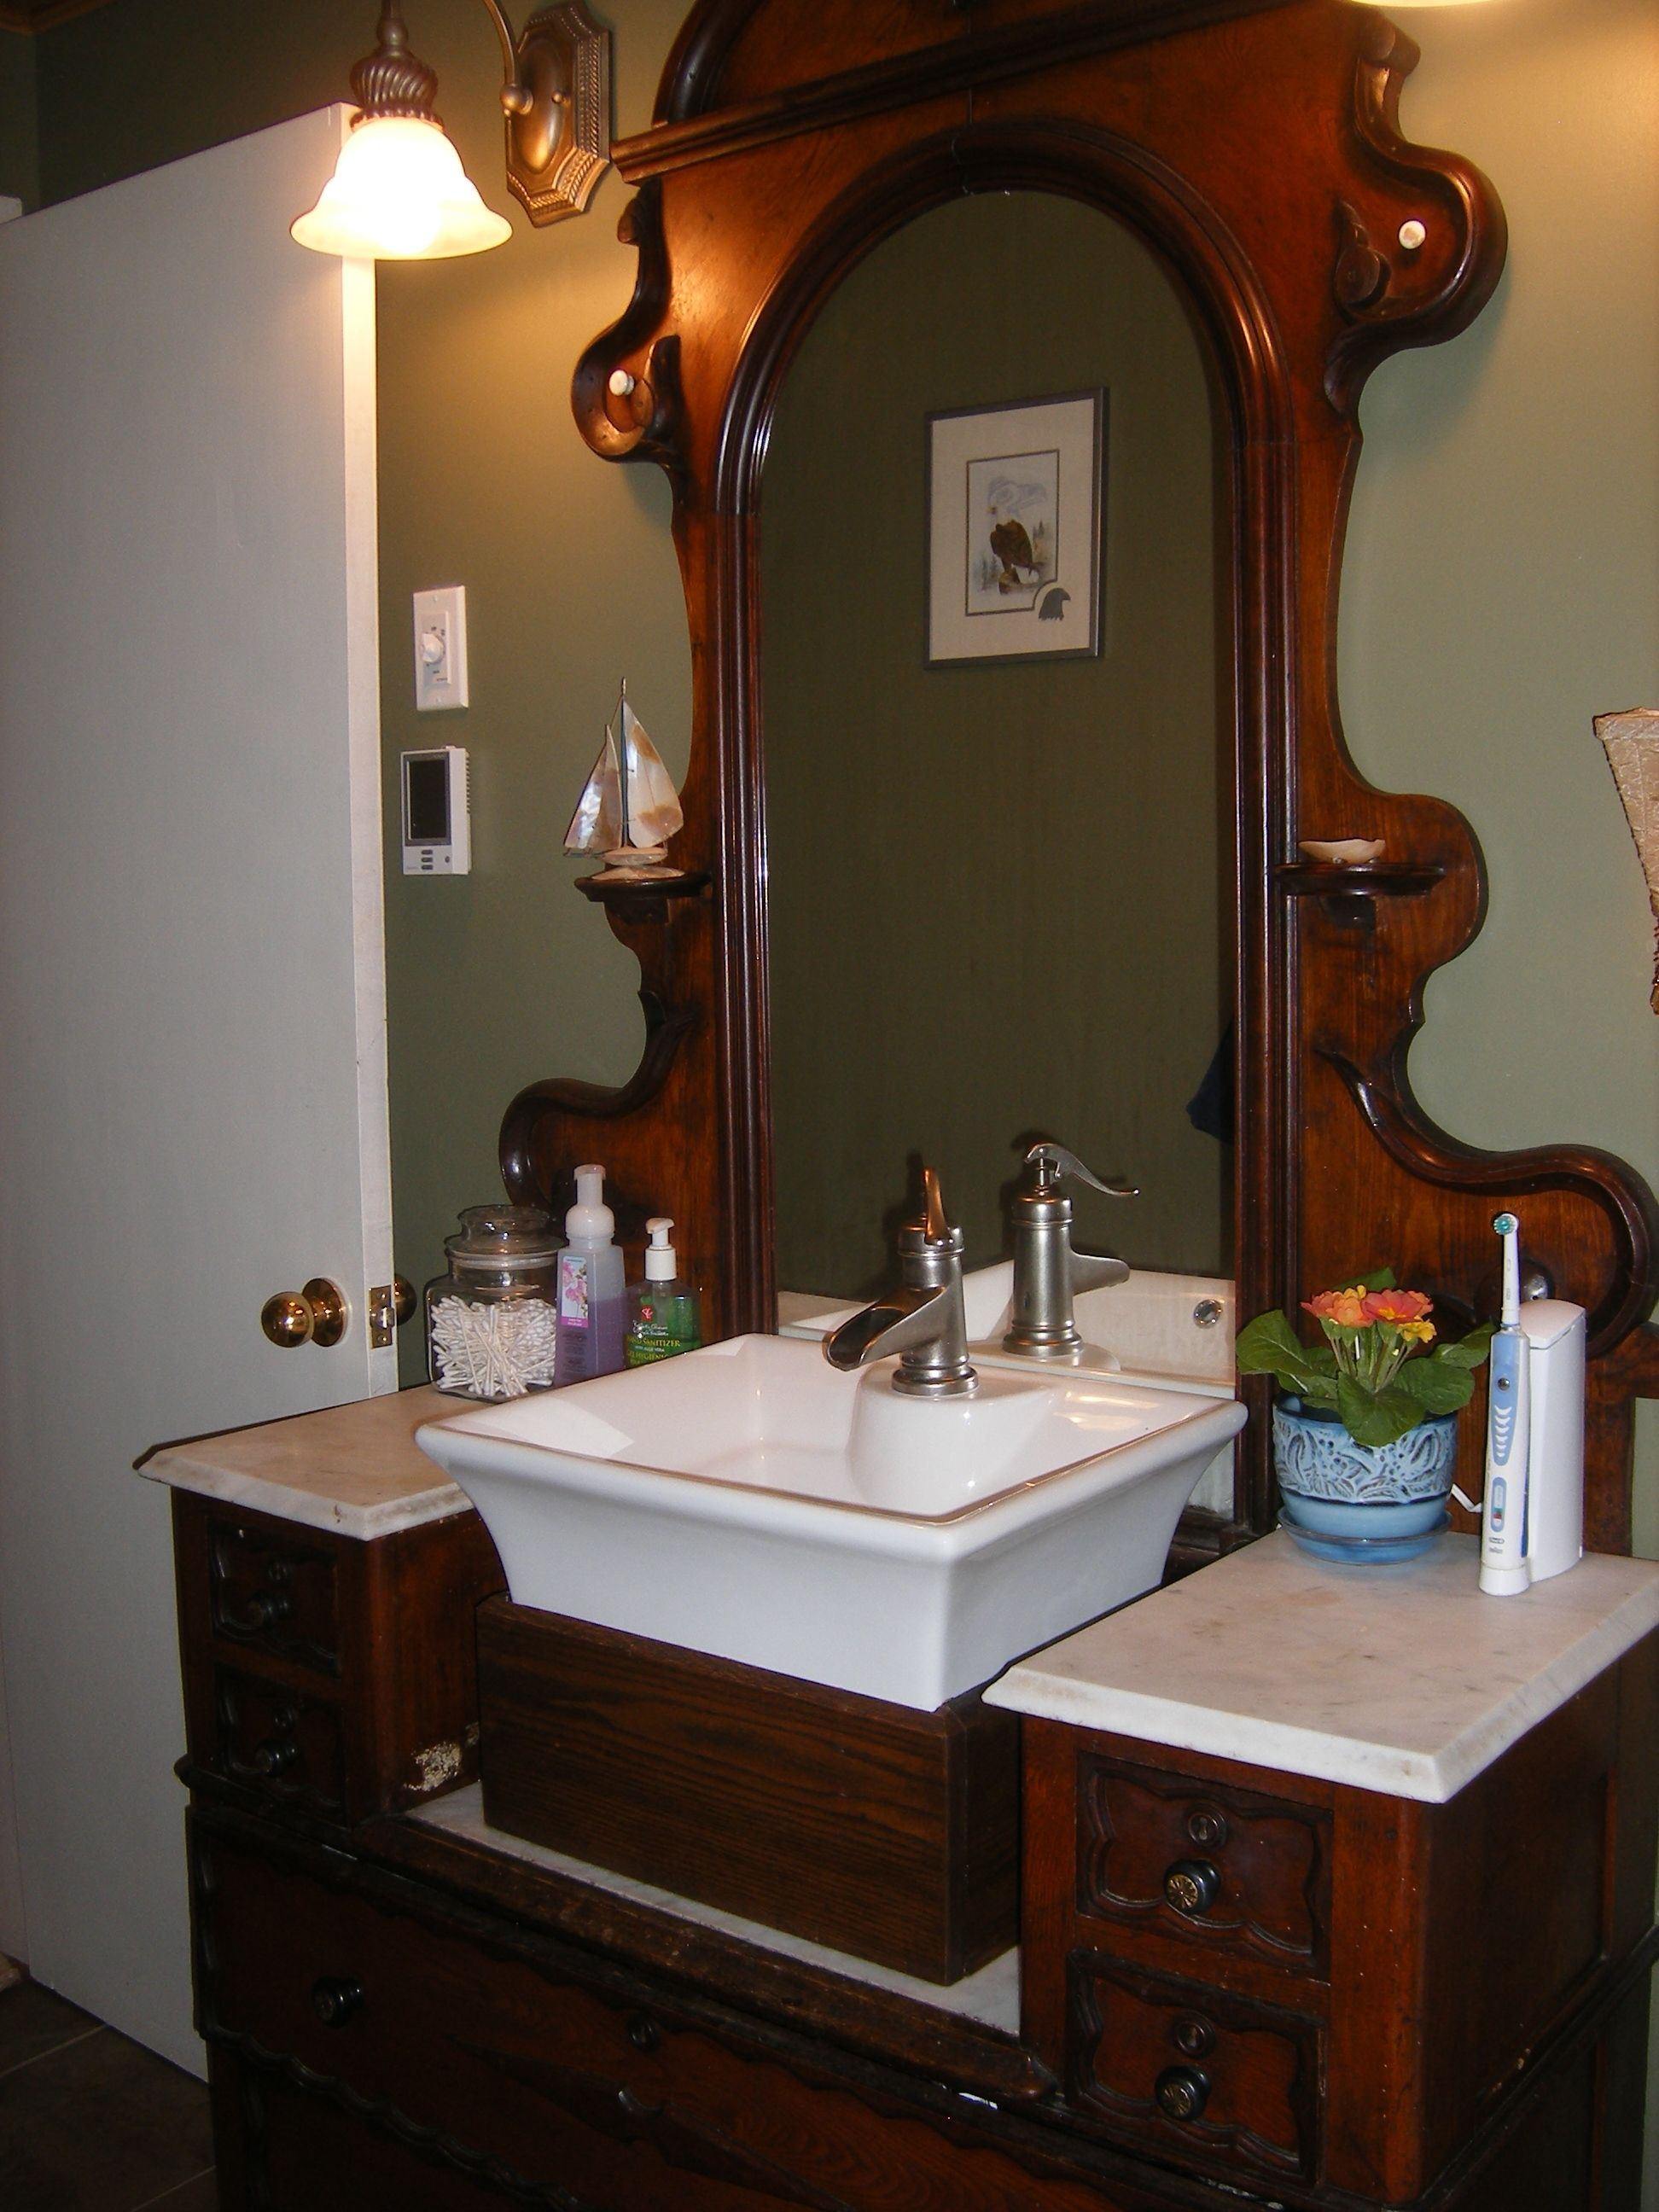 S Dresser Repurposed As Our 100 original Bathroom Vanity for